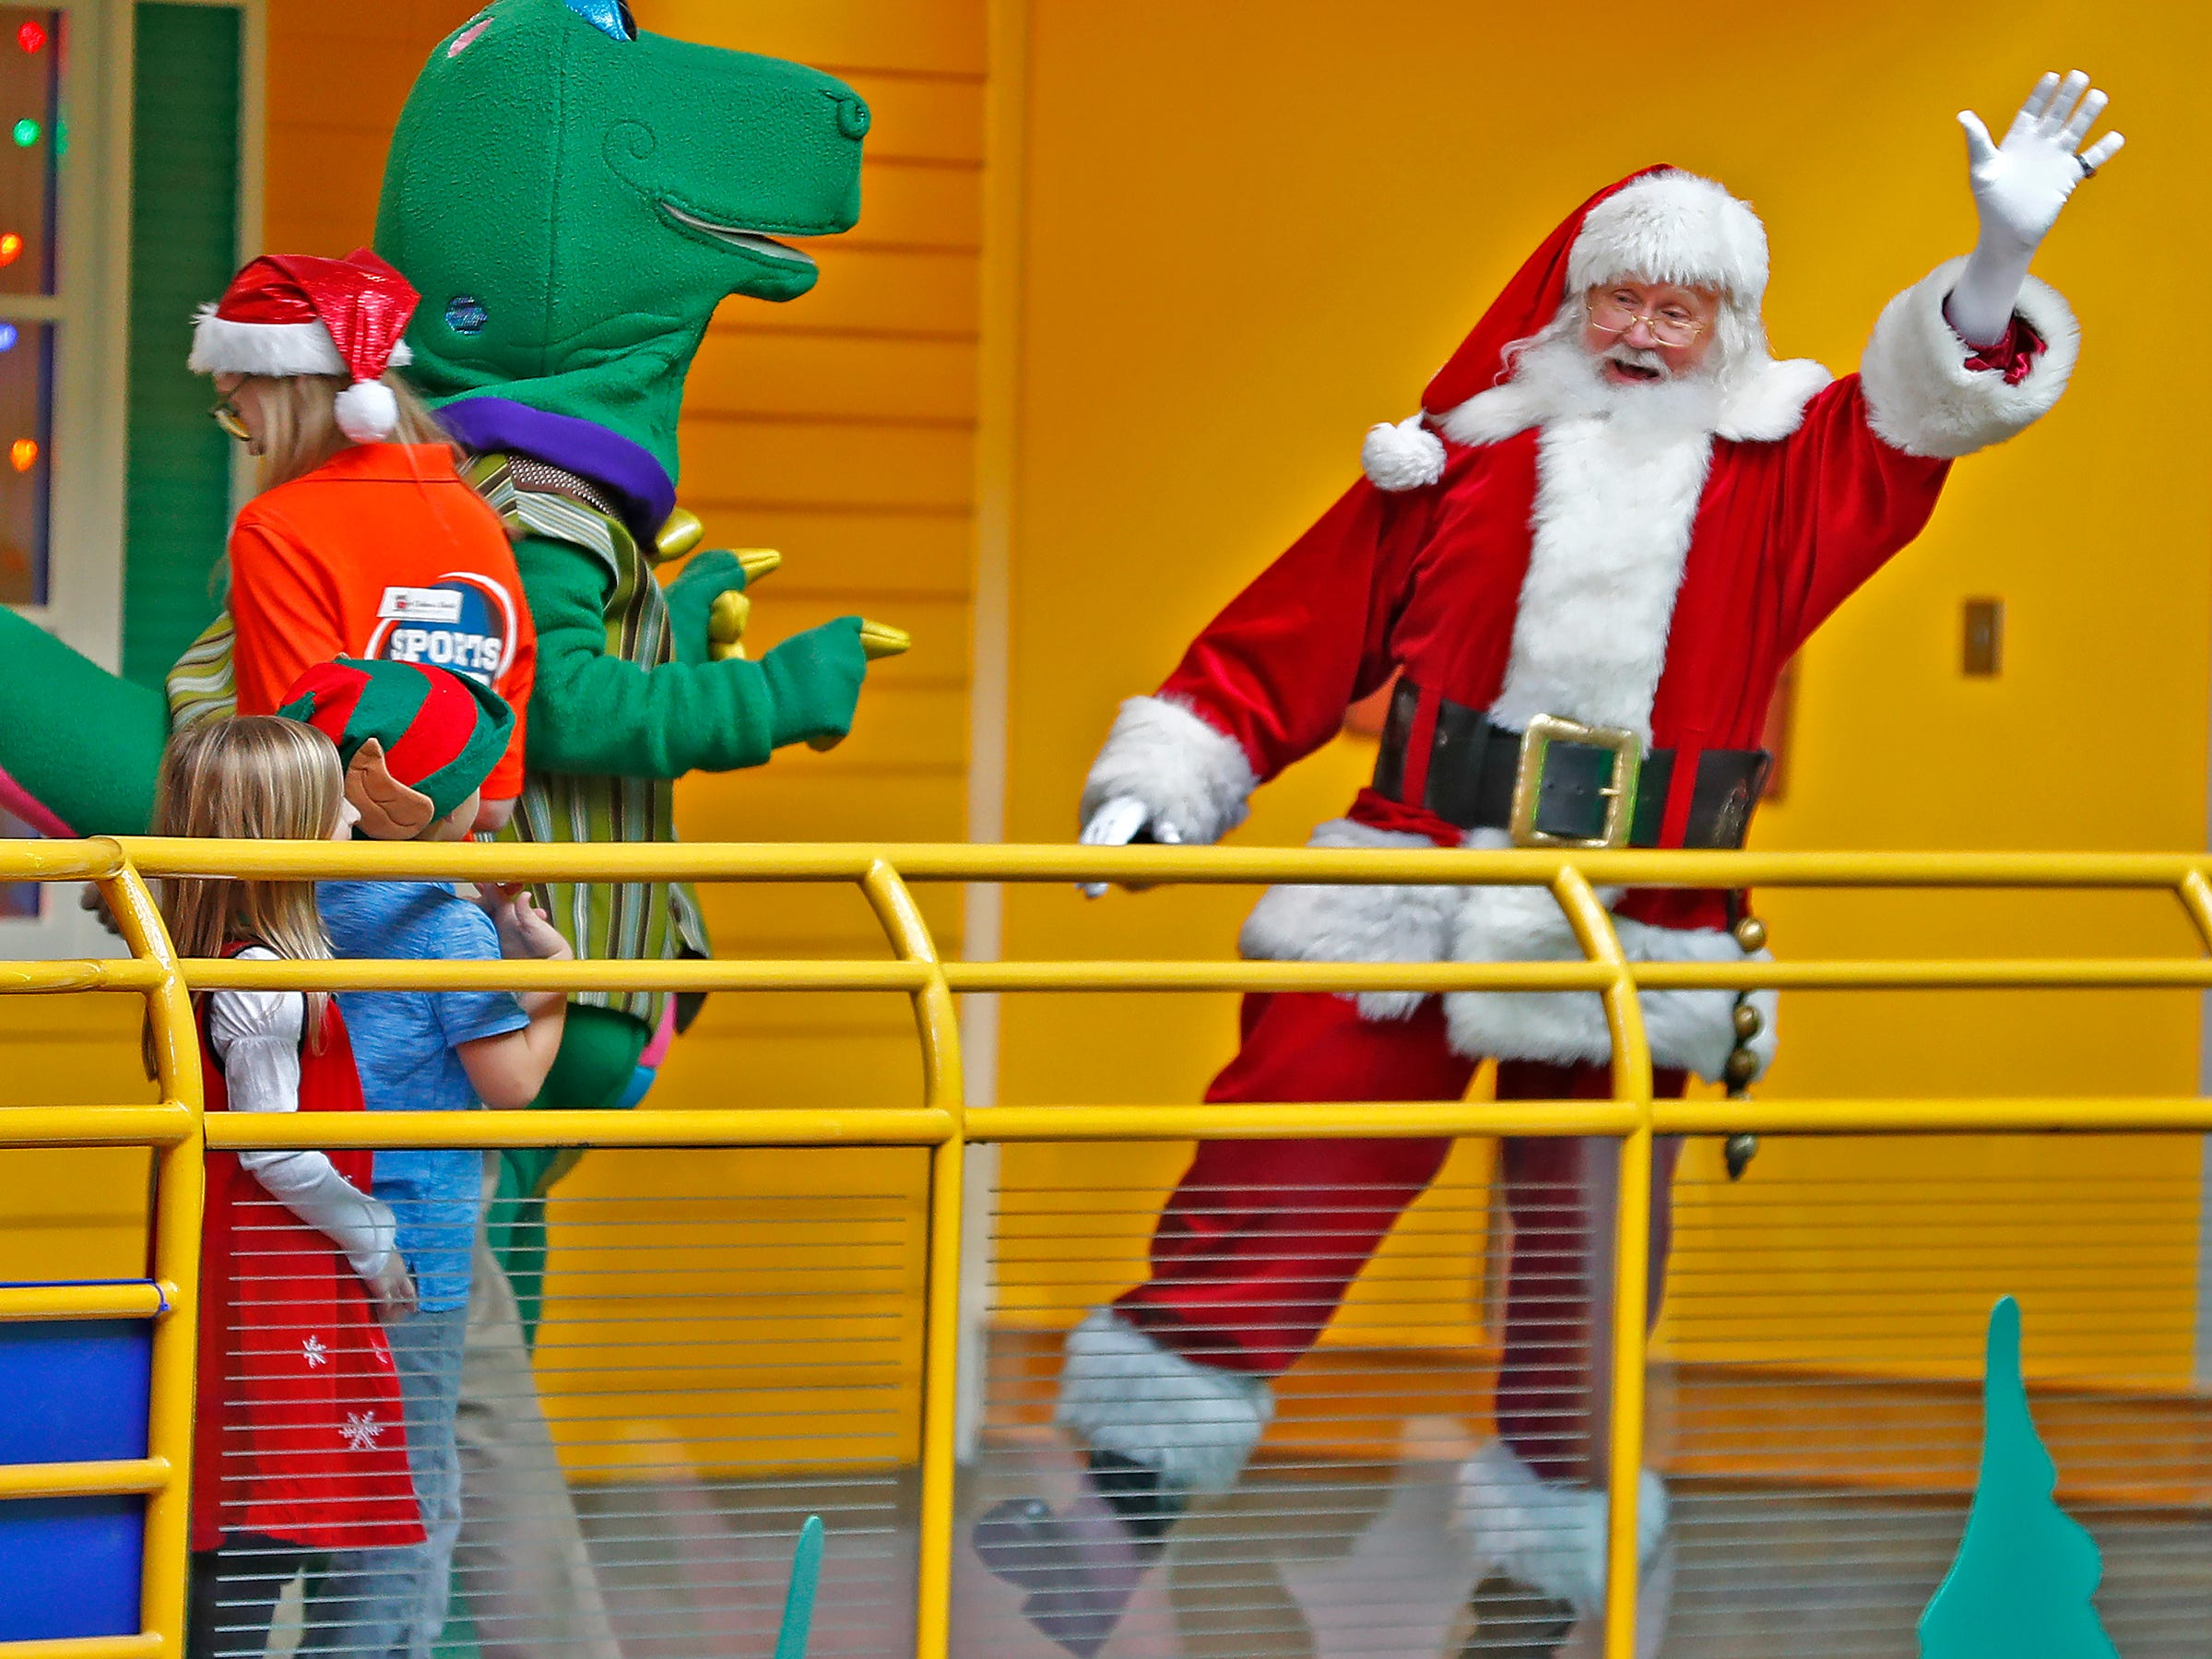 Santa waves to everyone at the Children's Museum of Indianapolis in an IndyCar driven by racer Ed Carpenter, Friday, Nov. 23, 2018.